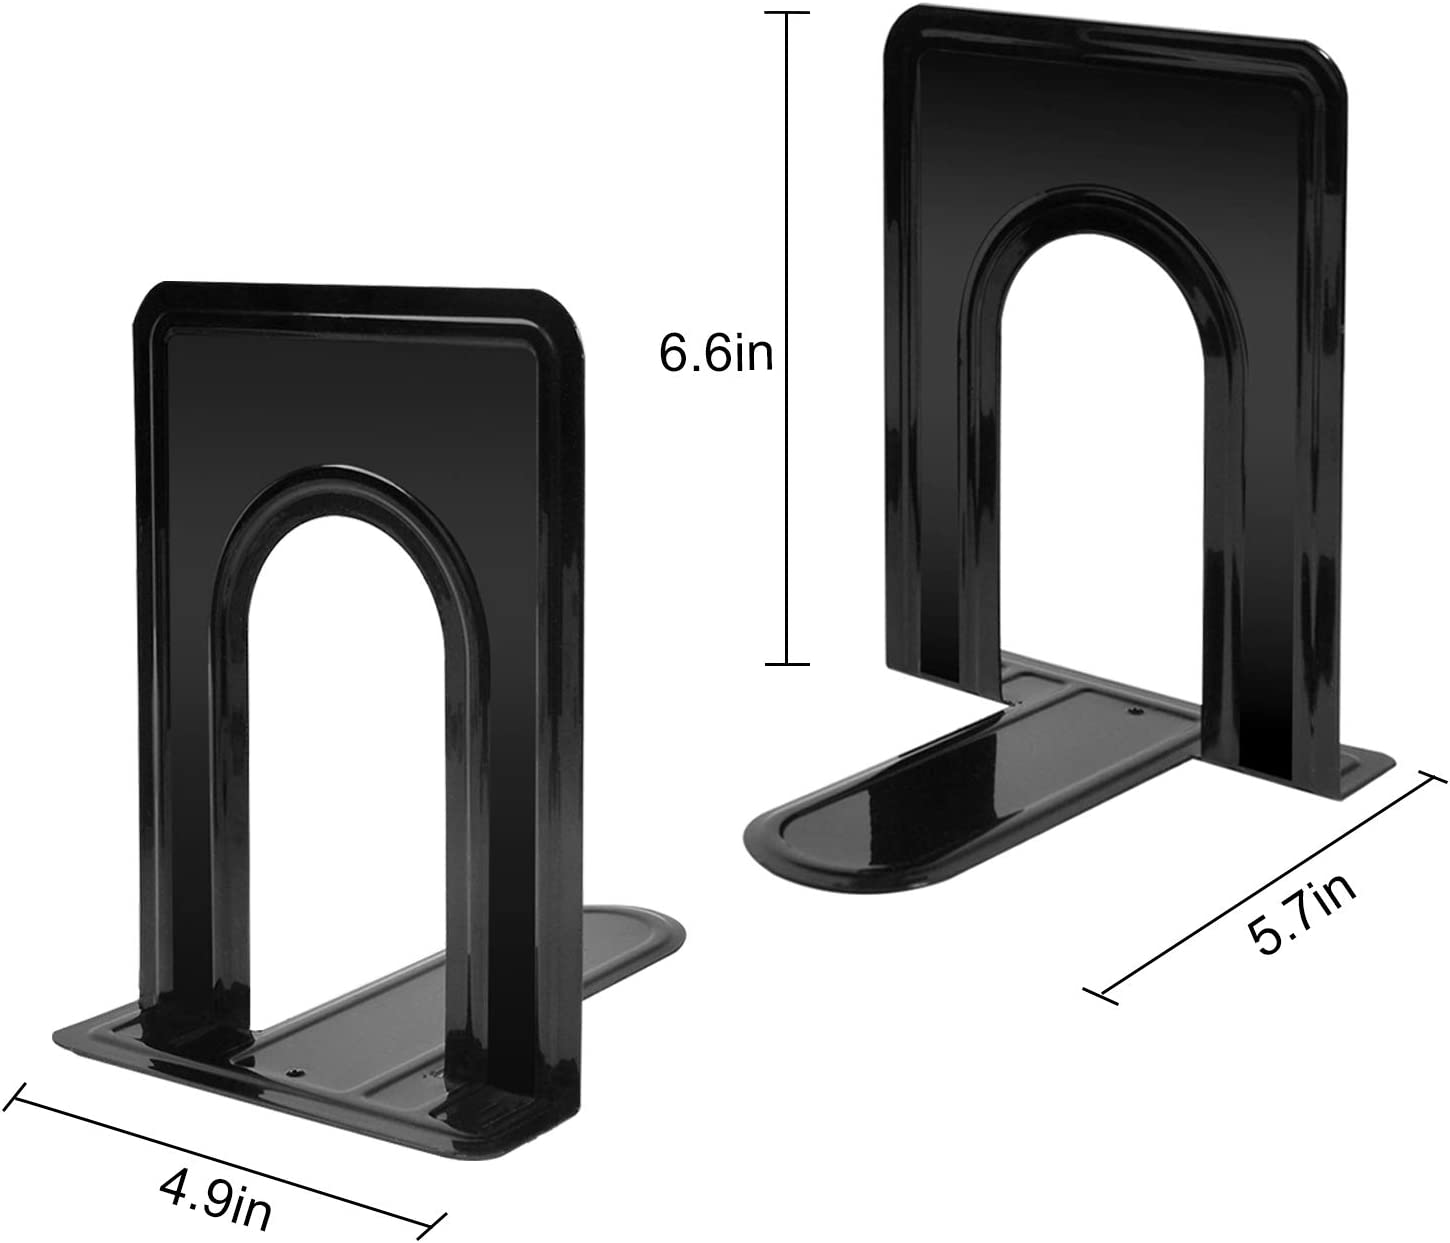 Bookends for Heavy Books Bookend Book End Bookends for Shelves Book Ends for Office Book Ends for Books Bookends for Holding Books Book Ends for Shelf Heavy Duty Bookend 4-Pair Black Metal Book Ends